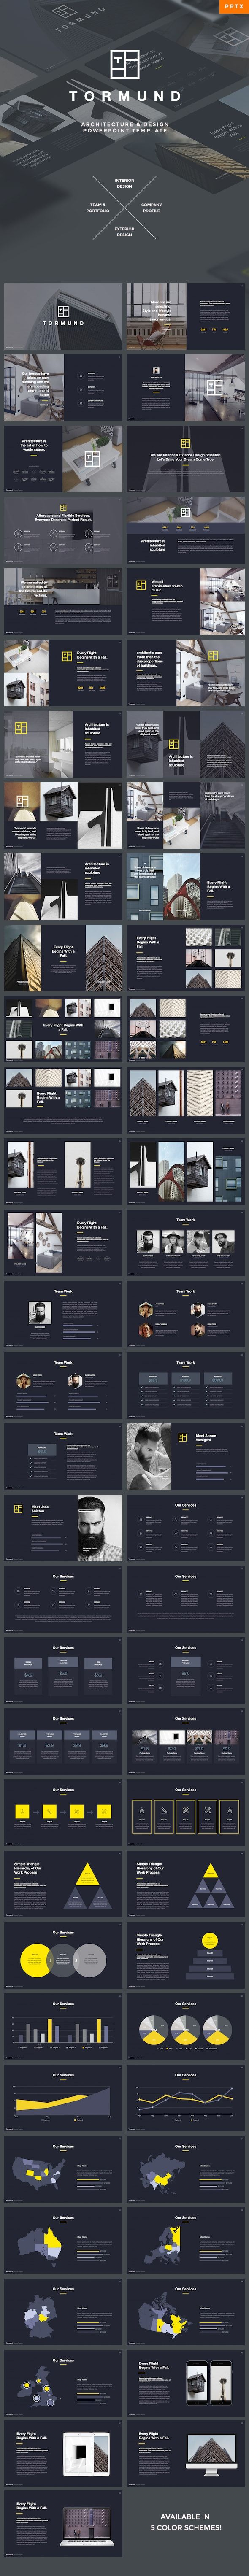 Thormund  Design & Portfolio Powerpoint Template — Powerpoint PPTX #architecture #1920x1080 • Download ➝ https://graphicriver.net/item/thormund-design-portfolio-powerpoint-template/19387581?ref=pxcr